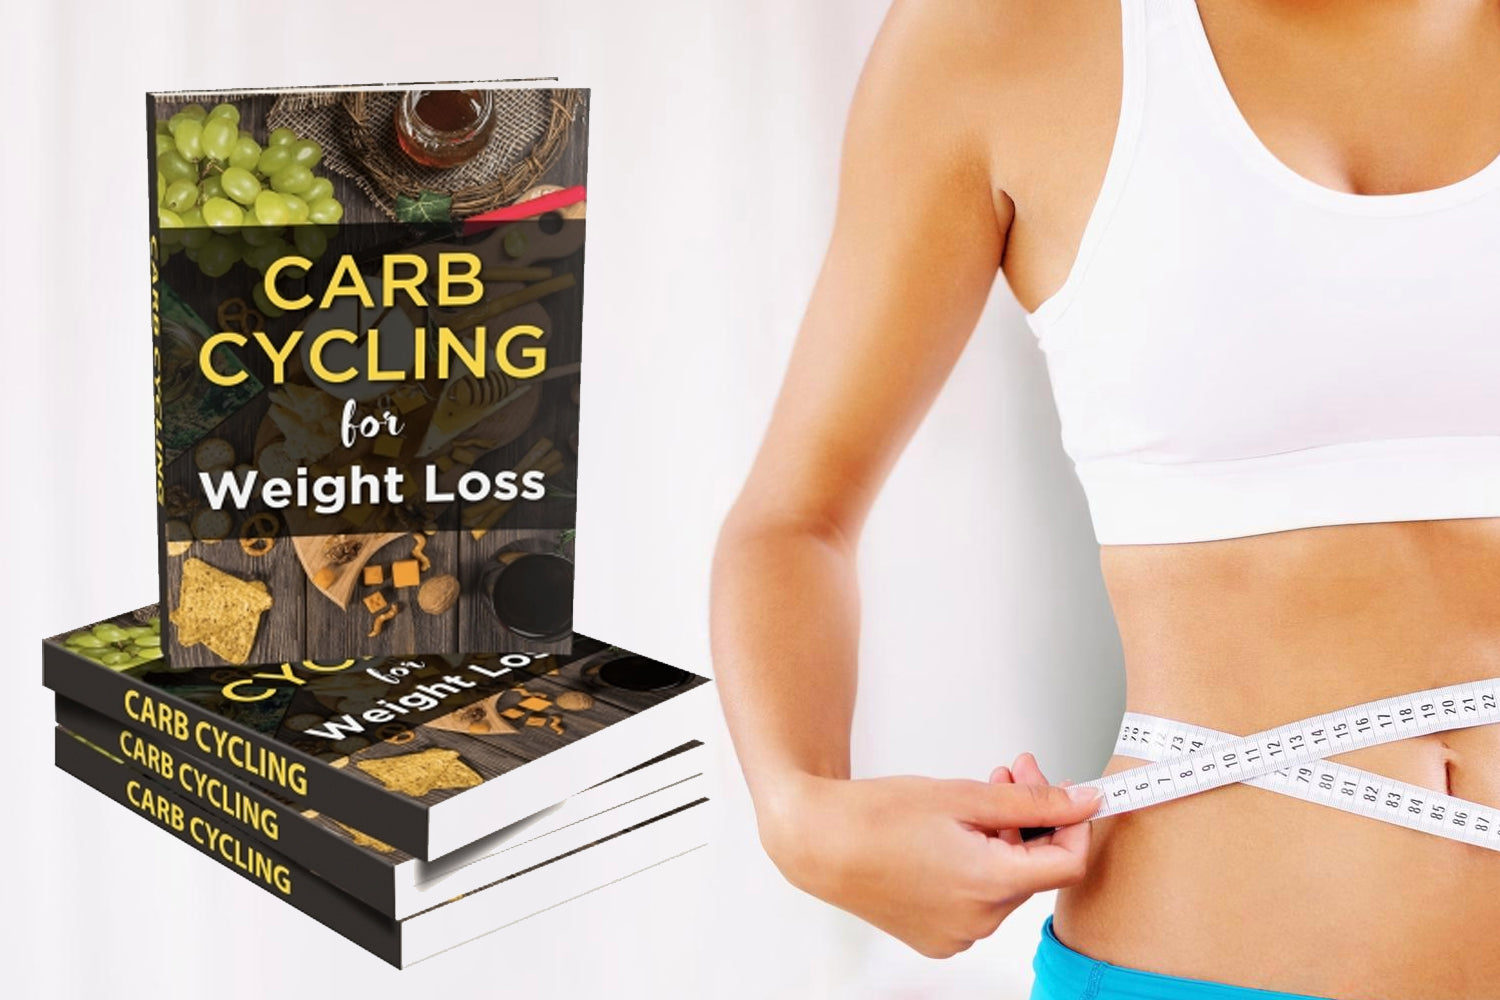 Carb Cycling for Weight Loss,  the ultimate diet guide for those who want to lose weight fast, boost athletic performance